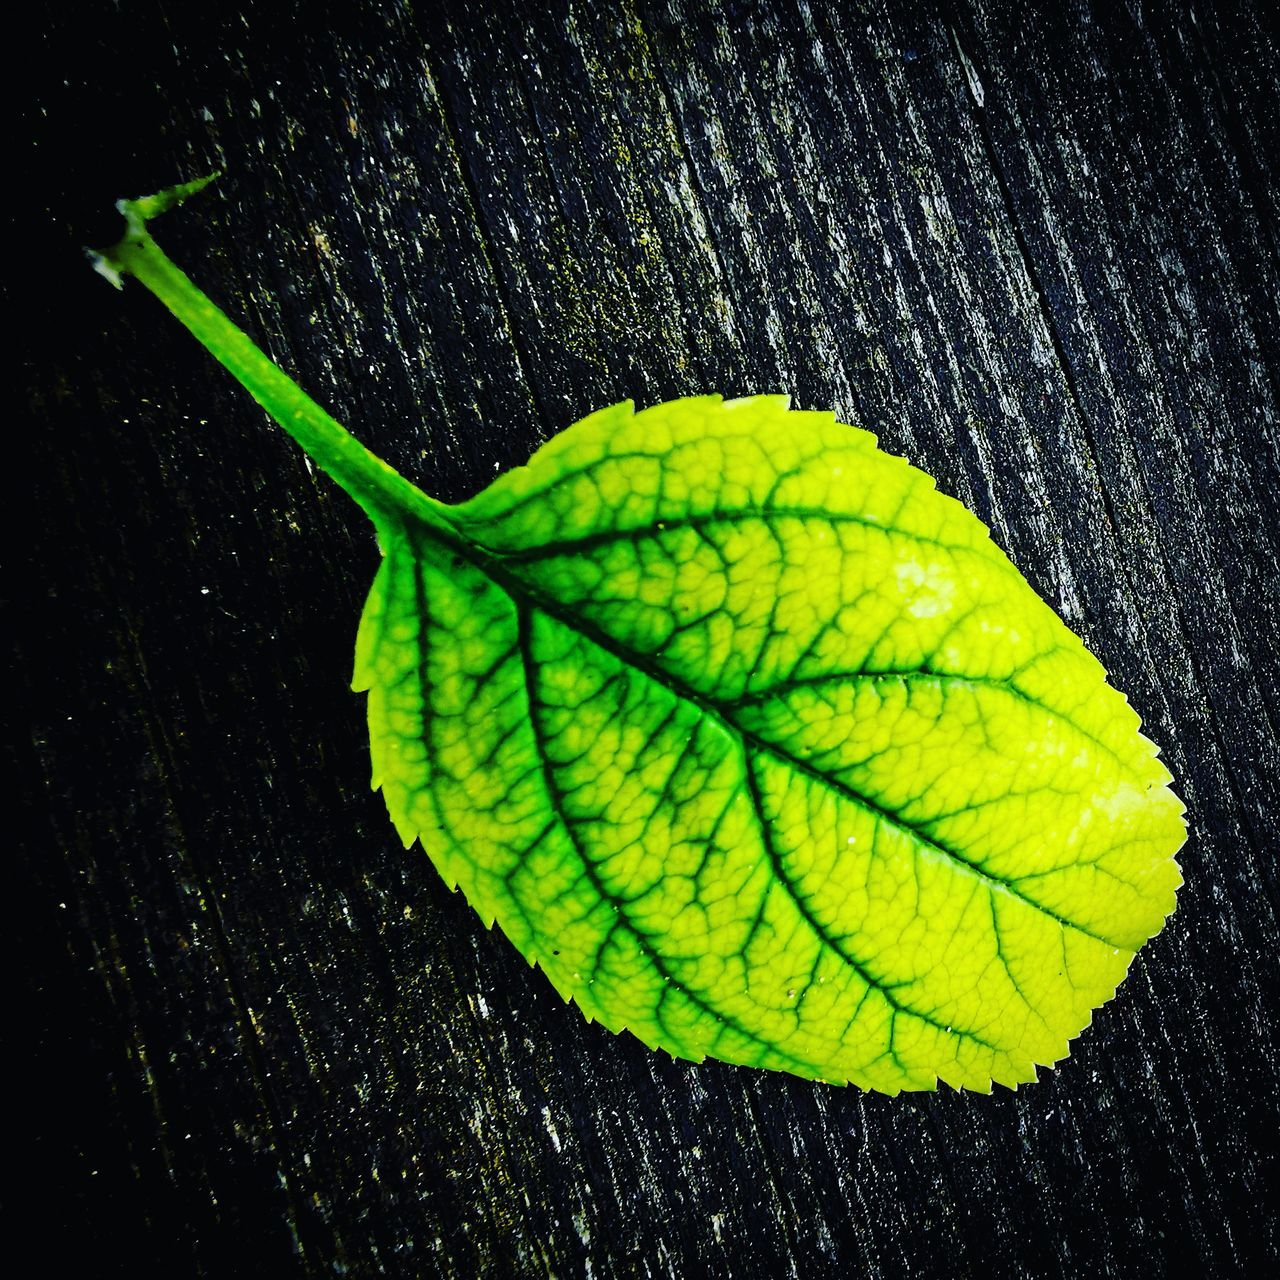 HIGH ANGLE VIEW OF WET PLANT LEAVES IN BLACK BACKGROUND